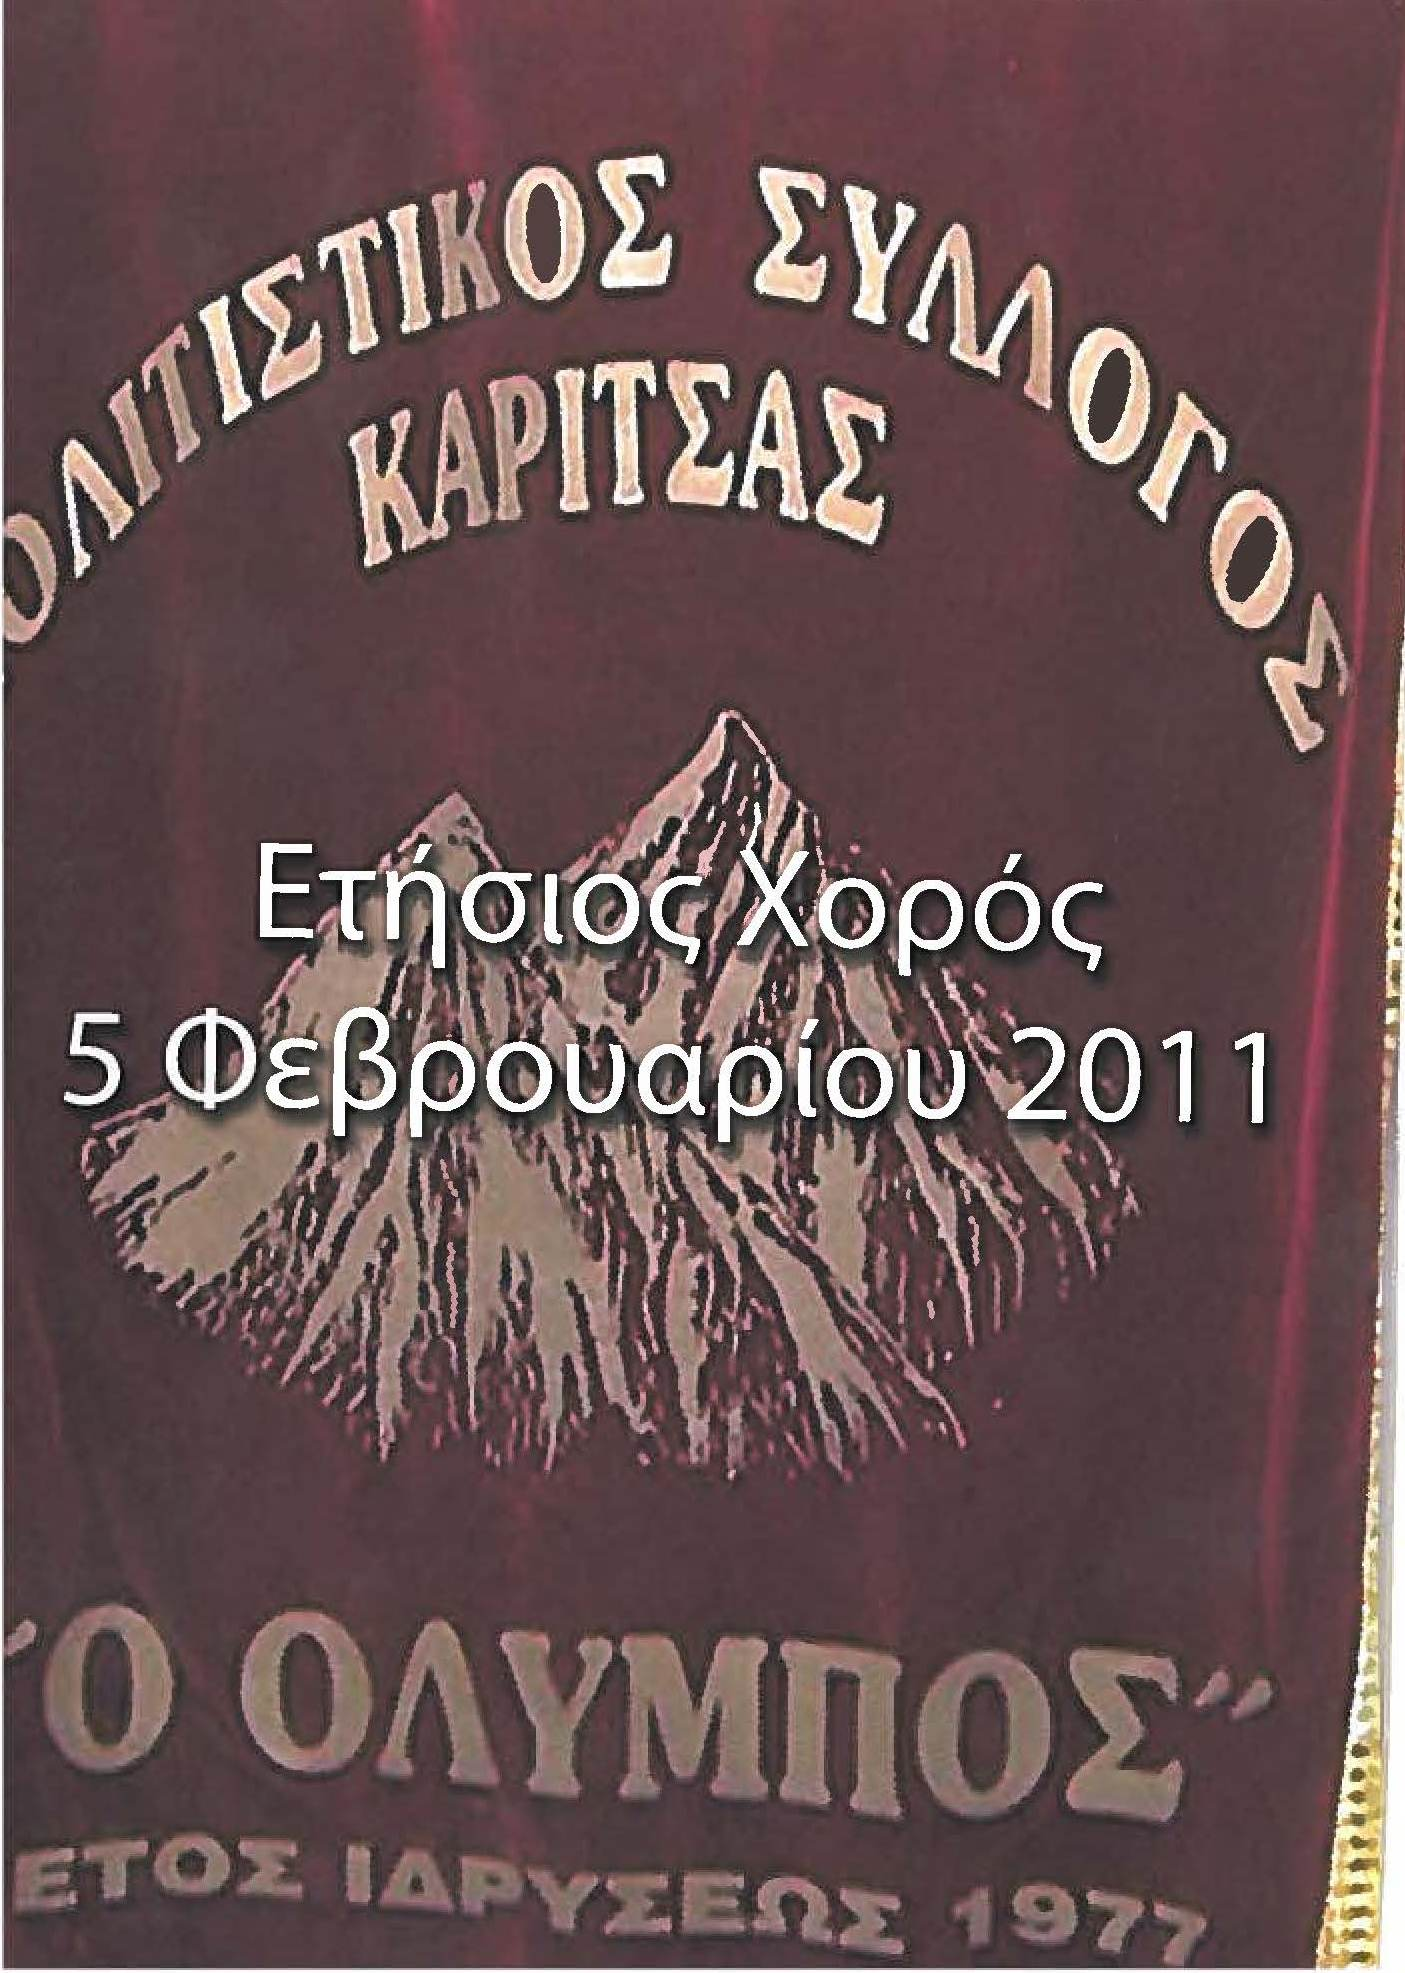 5-2-2011 ANNUAL DANCING EVENT - CULTURAL ASSOCIATION OF ΚΑΡΙΤΣΑ